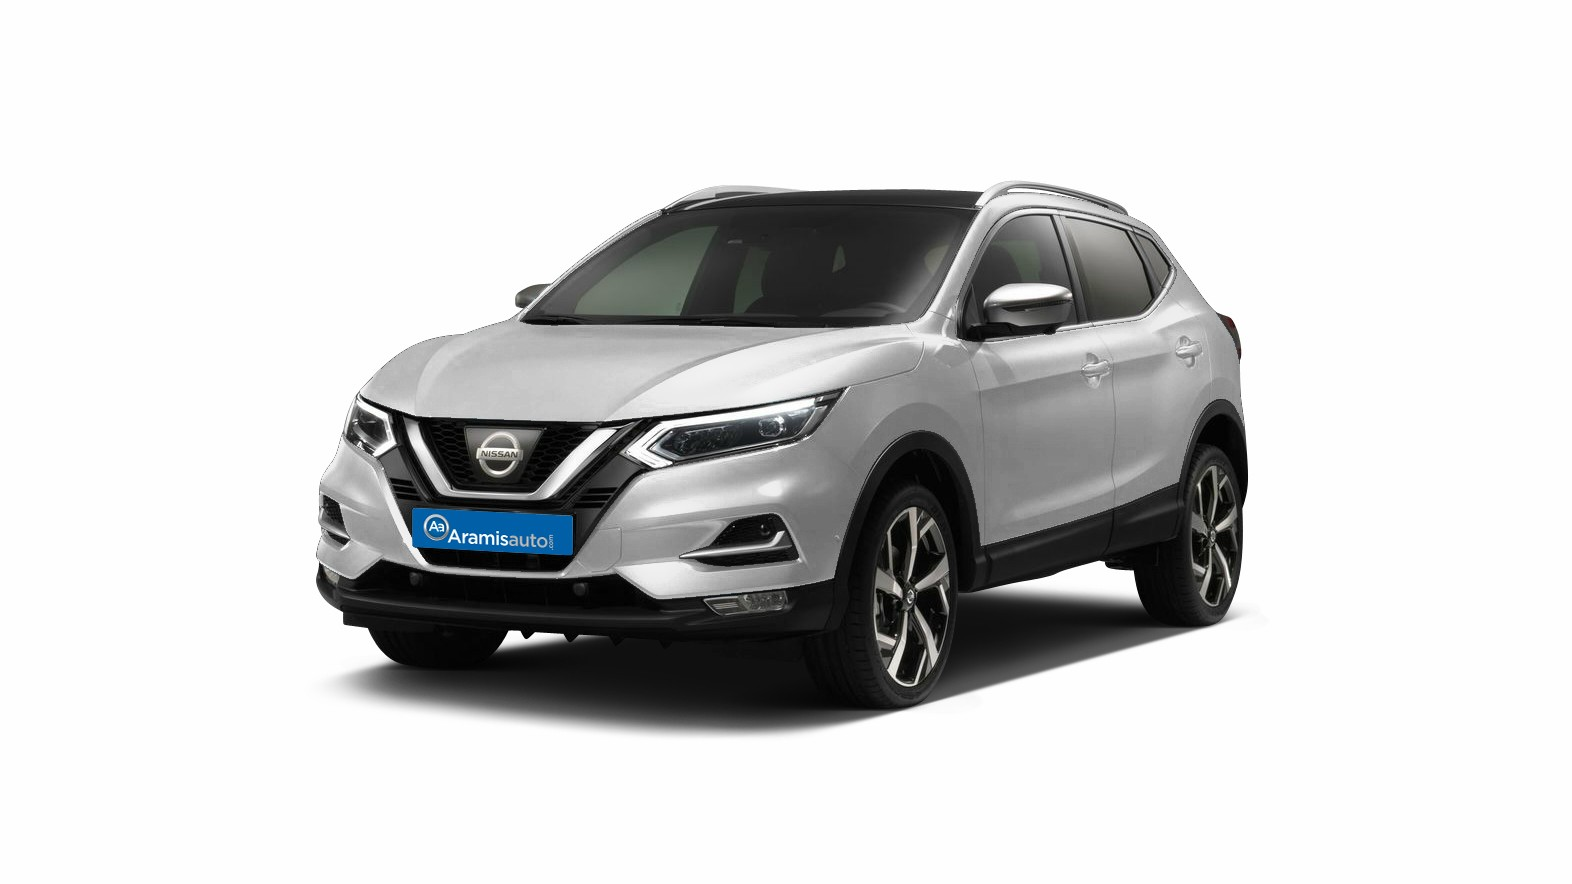 qashqai blanc qashqai blanc nos qashqai en photos nissan qashqai 1 6l dci 130 connect edition. Black Bedroom Furniture Sets. Home Design Ideas